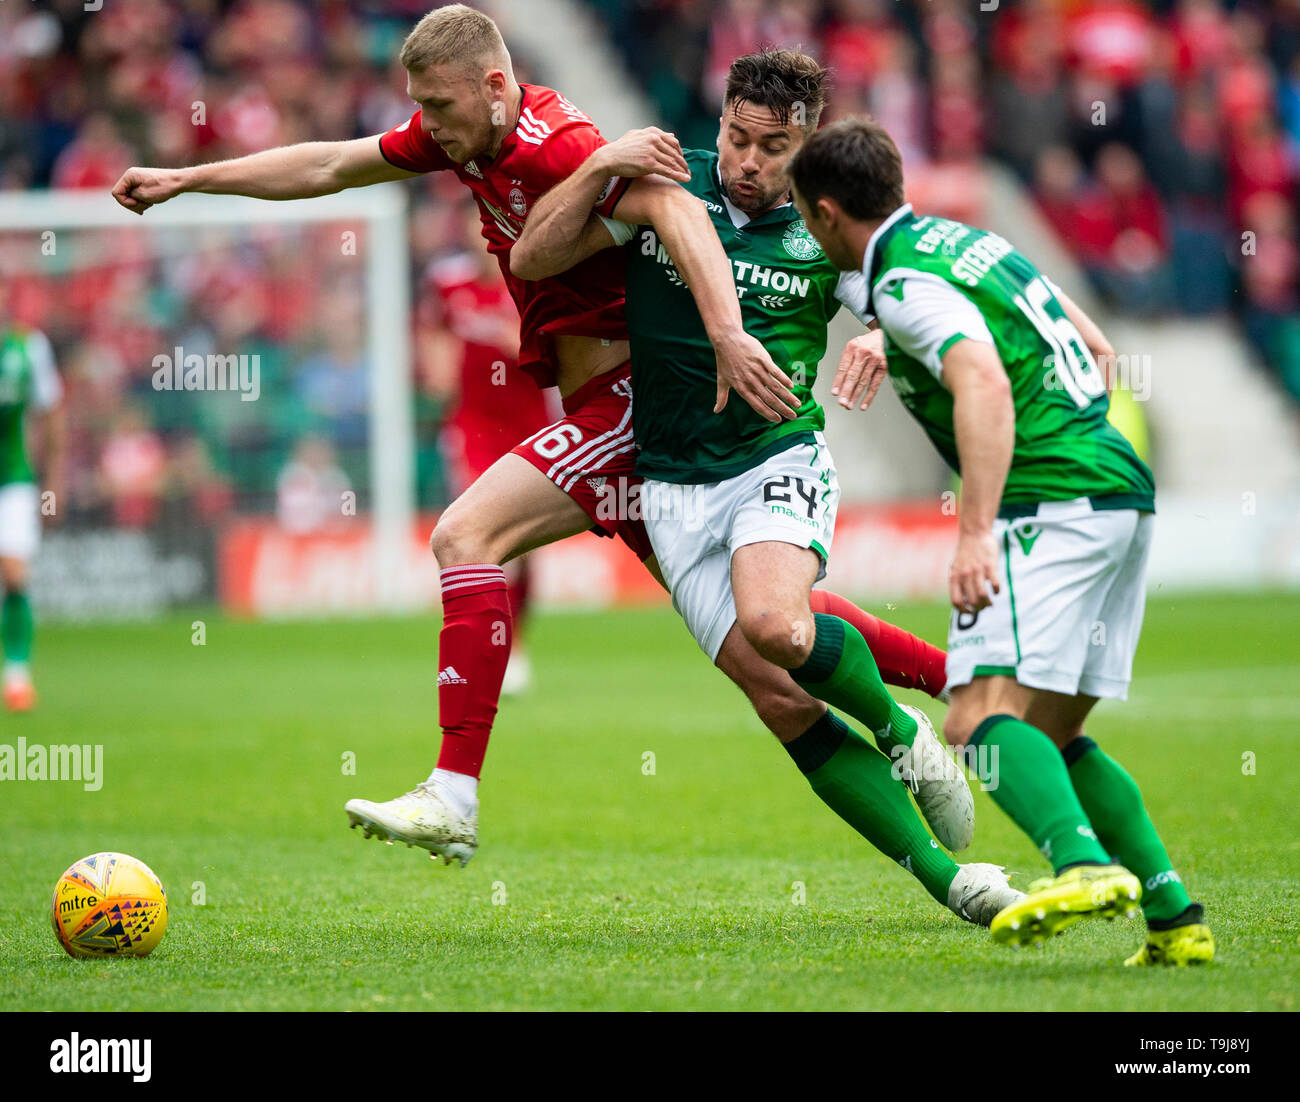 Edinburgh, Scotland, UK. 19th May, 2019. Edinburgh, Scotland, UK. 19th May, 2019.  Pic shows: Aberdeen midfielder, Sam Cosgrove, and Hibs' defender, Darren McGregor, tussle for the ball during the first half as Hibs play host to Aberdeen at Easter Road Stadium, Edinburgh Credit: Ian Jacobs/Alamy Live News Stock Photo